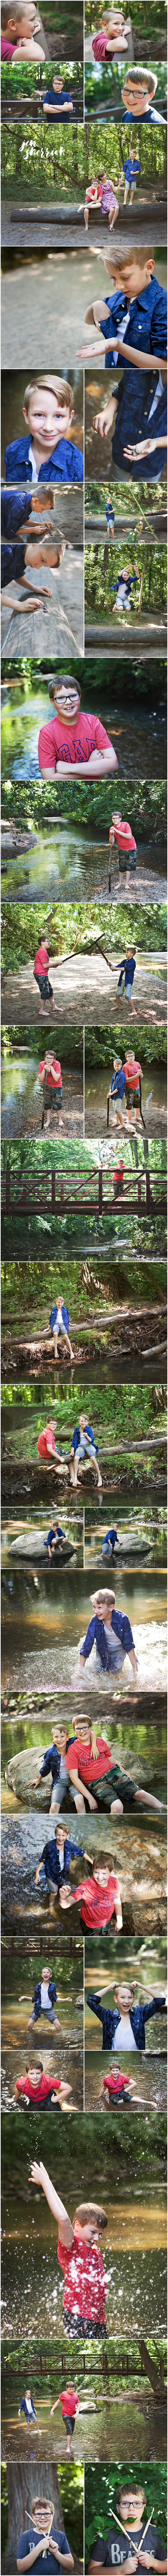 boys stomping in a creek